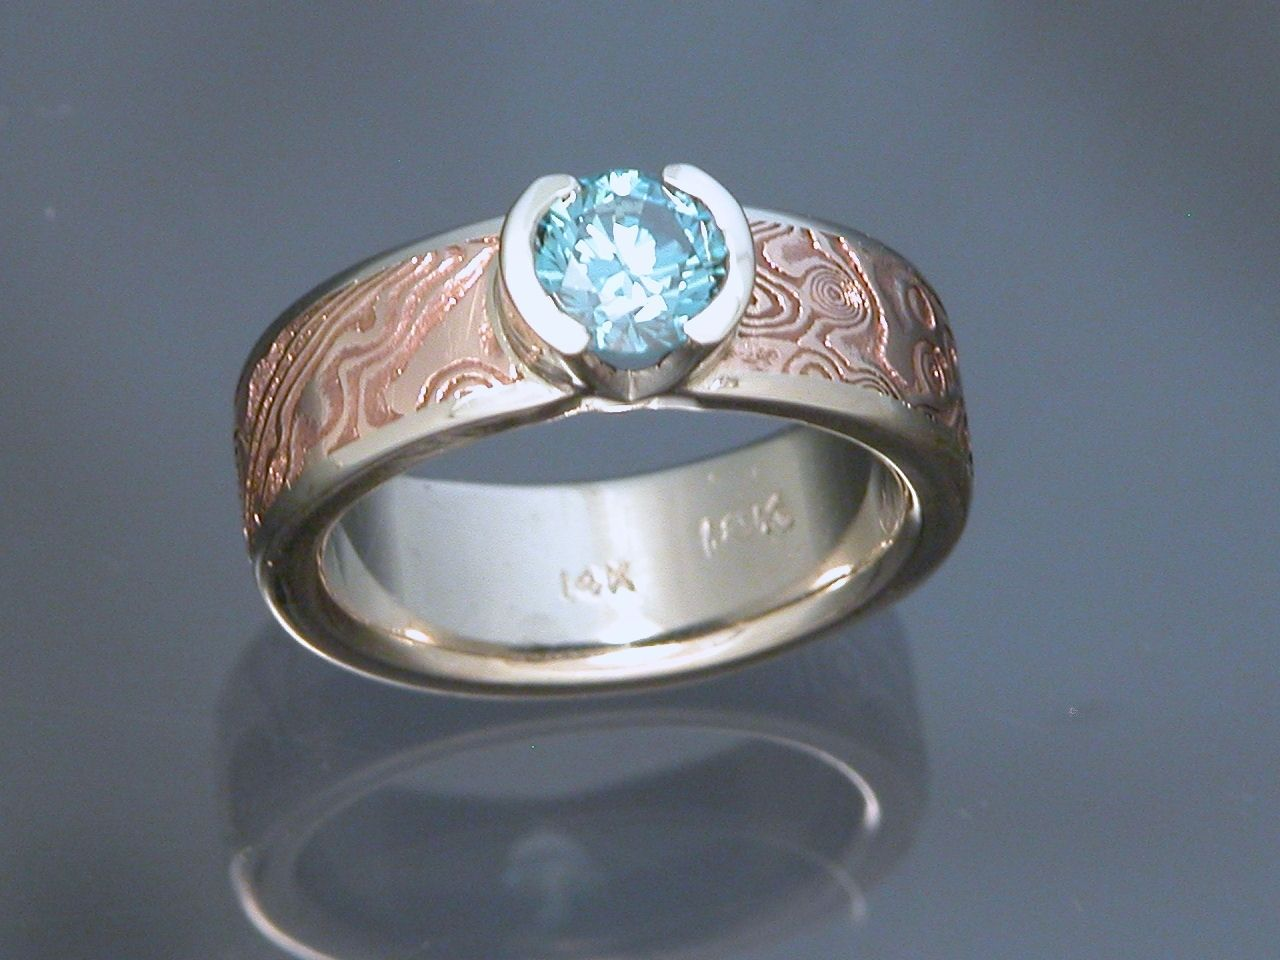 mokume gane anneville wedding studio custom smooth etched orig vs rings